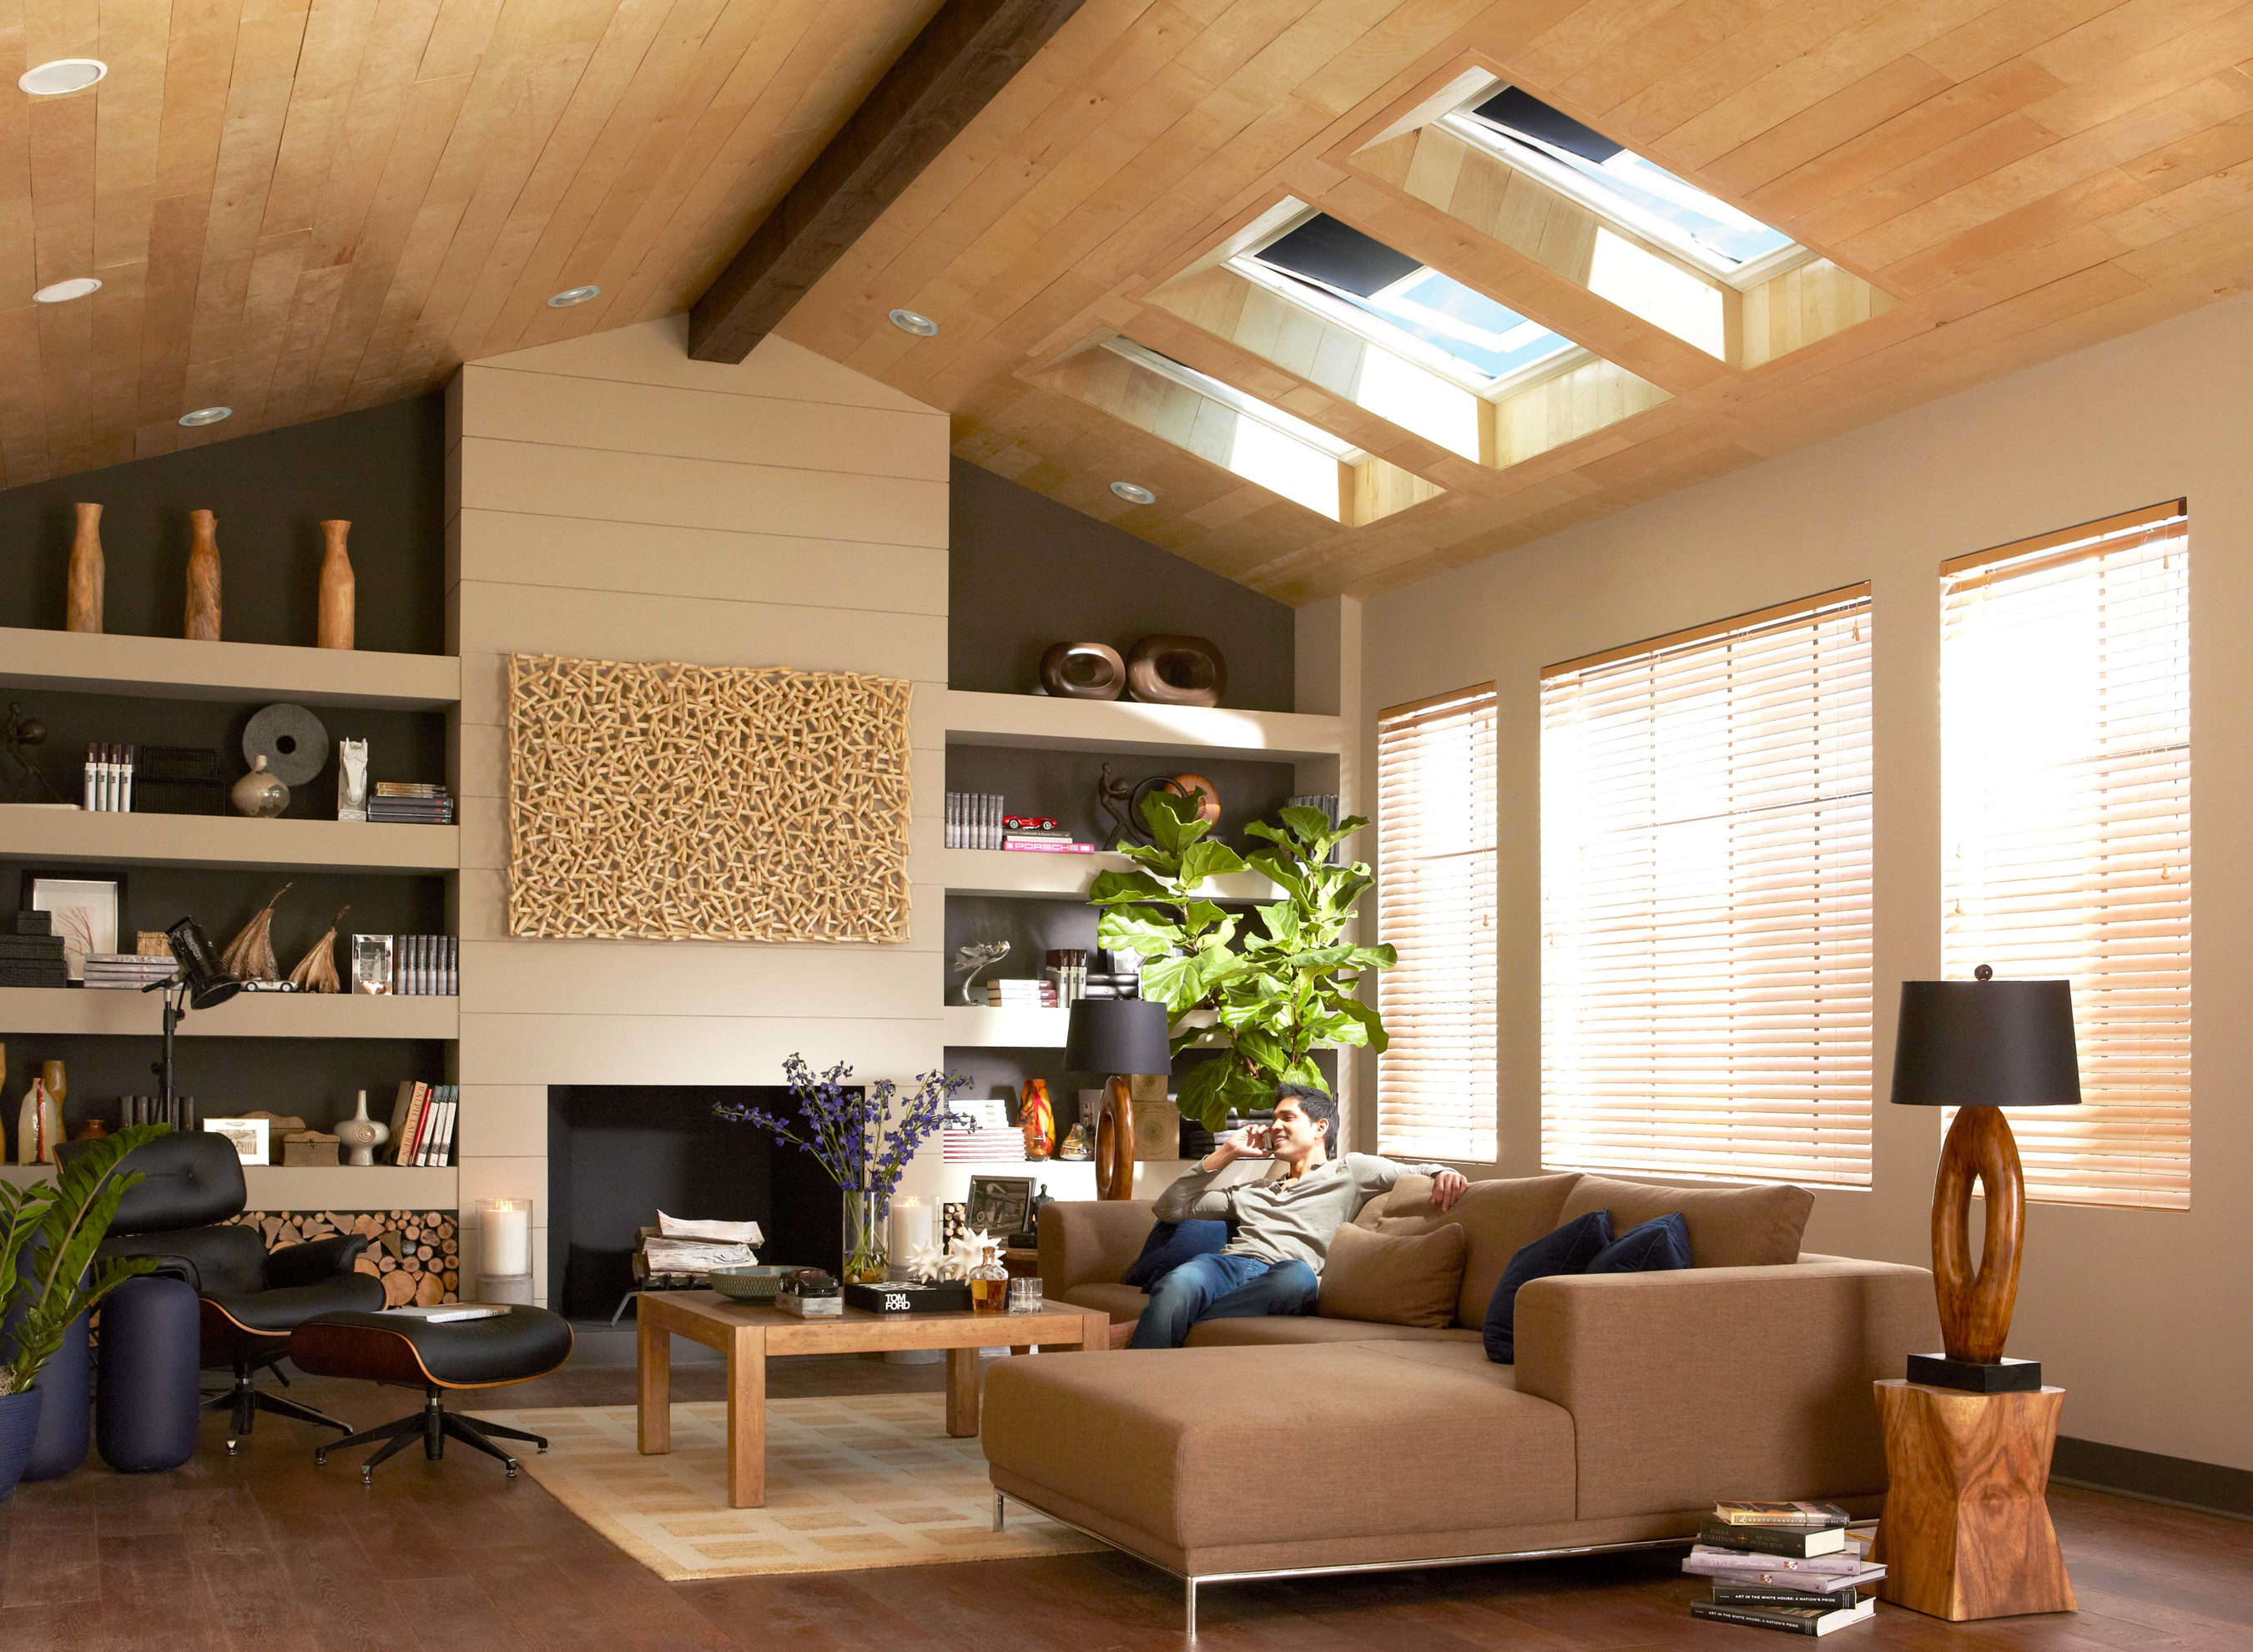 Energy Star-qualified solar powered fresh air skylights, with decor-enhancing solar powered designer blinds, add drama to any room while providing abundant natural light, passive ventilation and privacy. Both skylights and blinds are operated by remote control and are eligible for a 30 percent Federal tax credit, as are installation costs. (PRNewsFoto/VELUX)